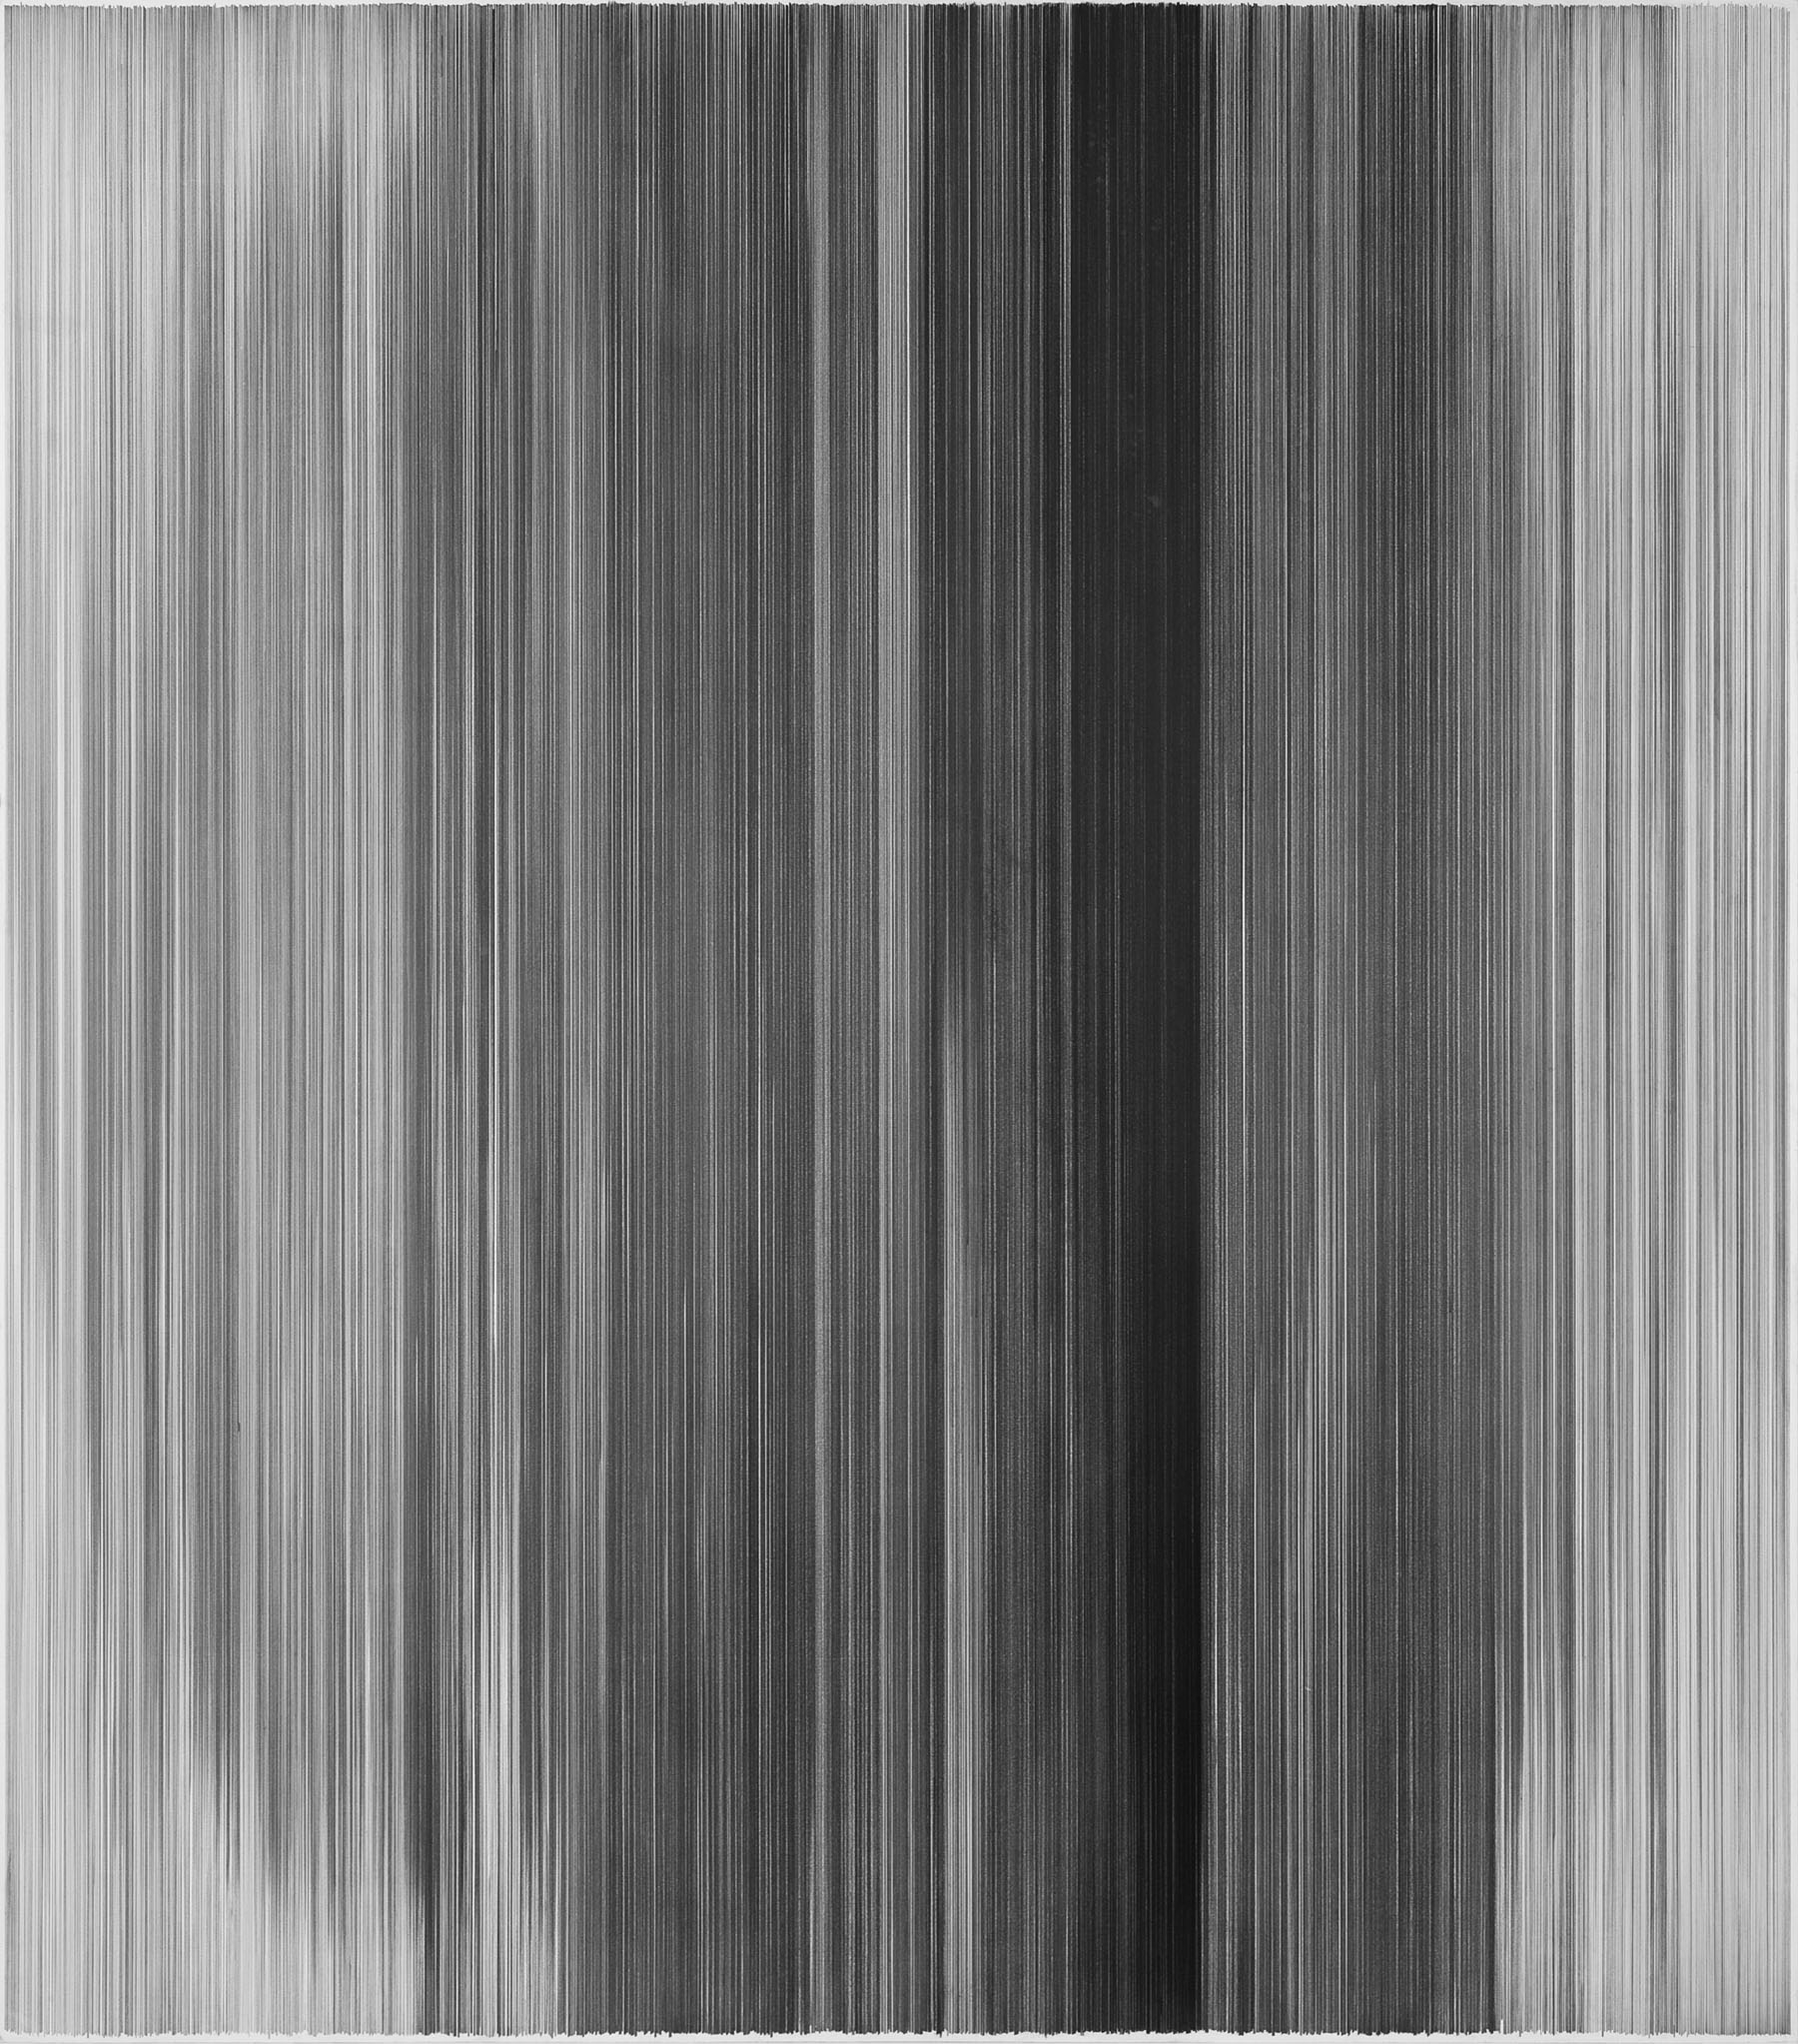 parallel 23   2010 graphite on cotton mat board 50 by 58 inches Collection of Nerman Museum of Contemporary Art, Overland Park, Kansas